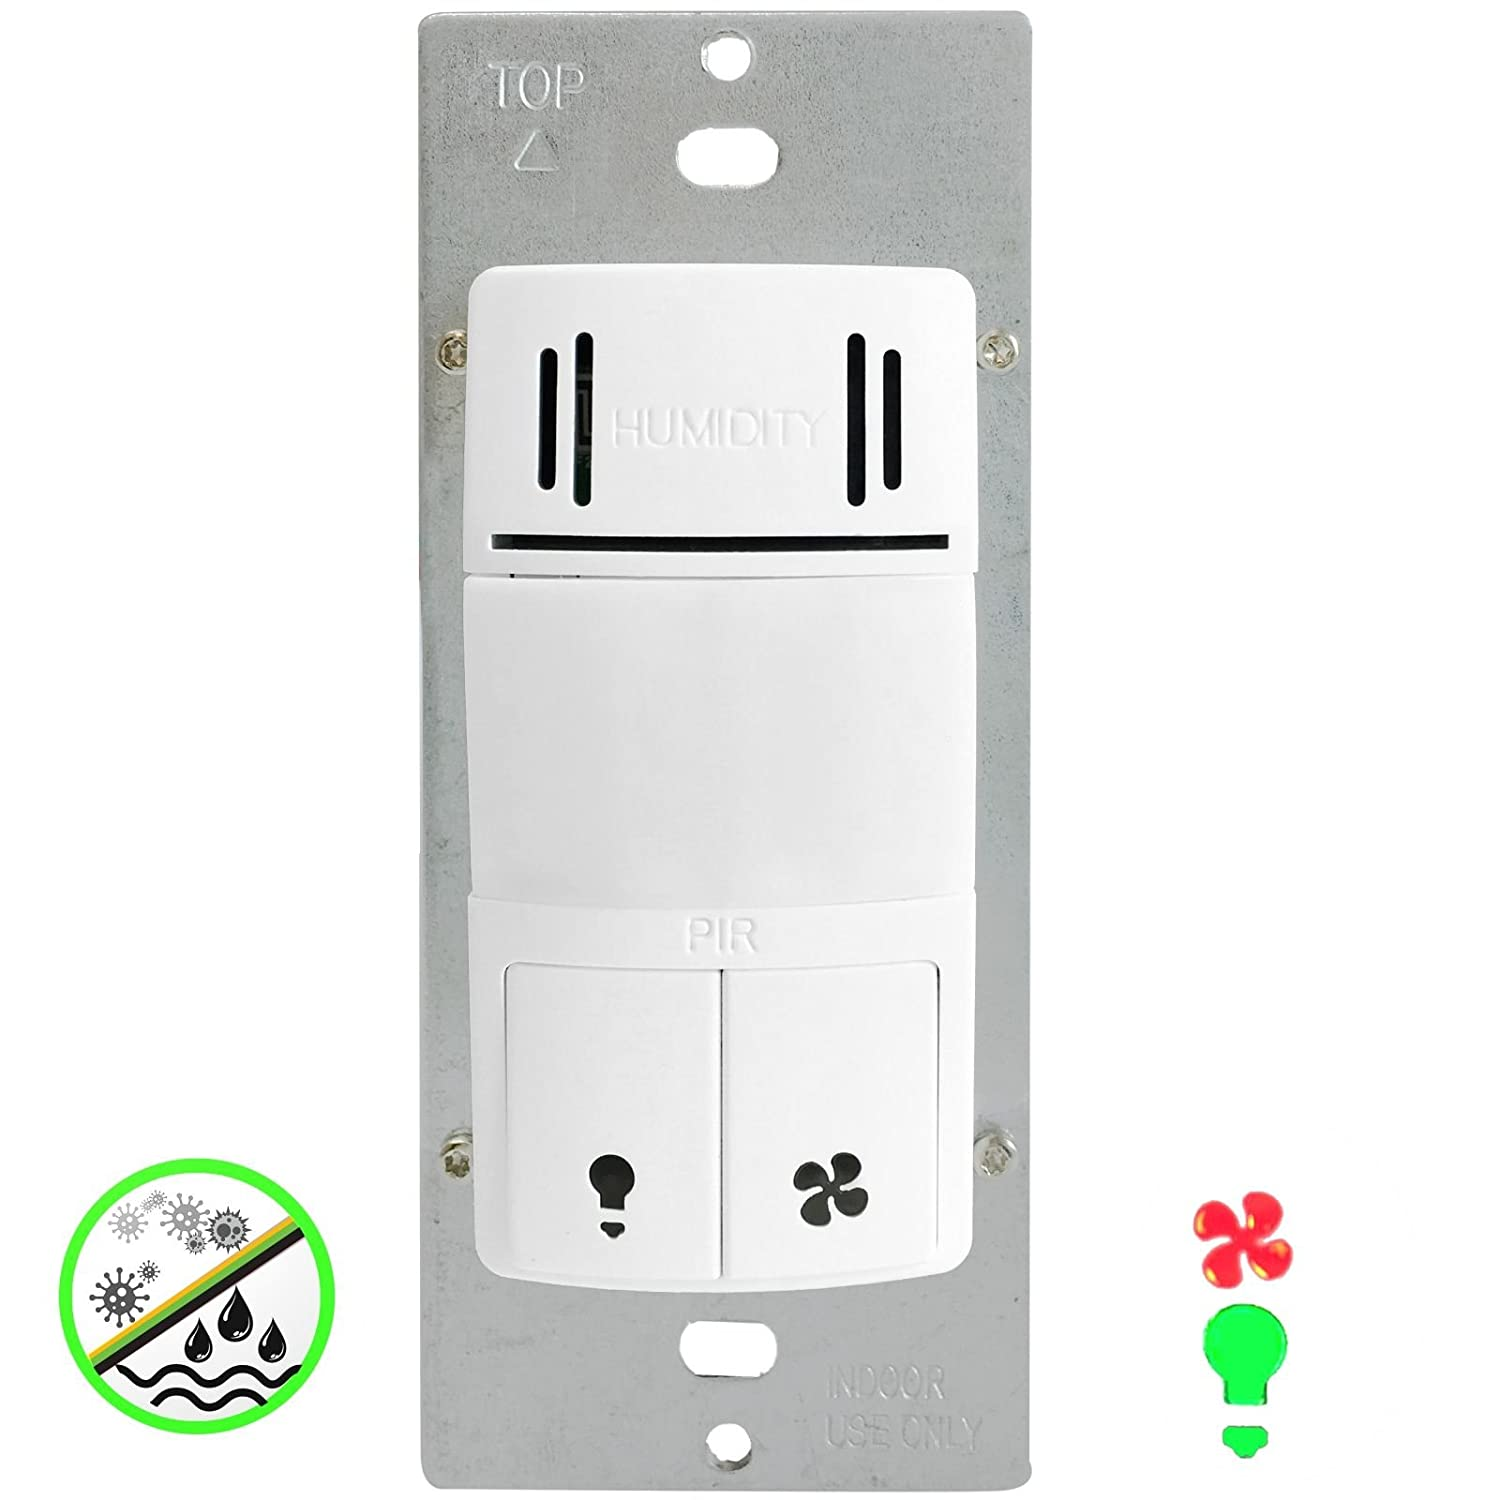 Wiring Bathroom Fan And Light Separately: Humidity Control Switch By Enerlites 2-in-1 Humidity